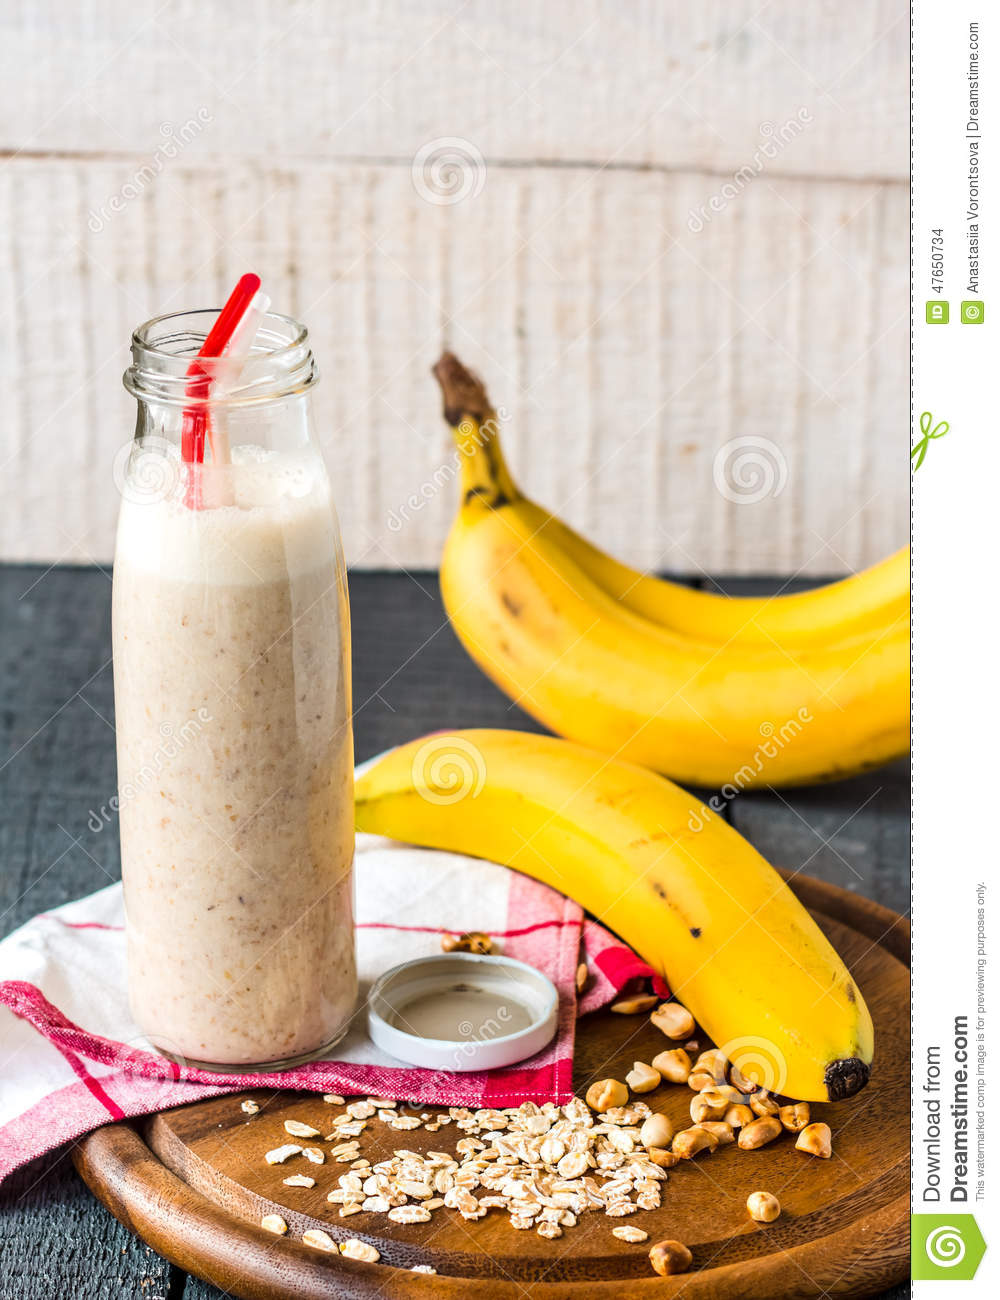 Banana Smoothie With Walnut Paste Stock Photo - Image: 47650734